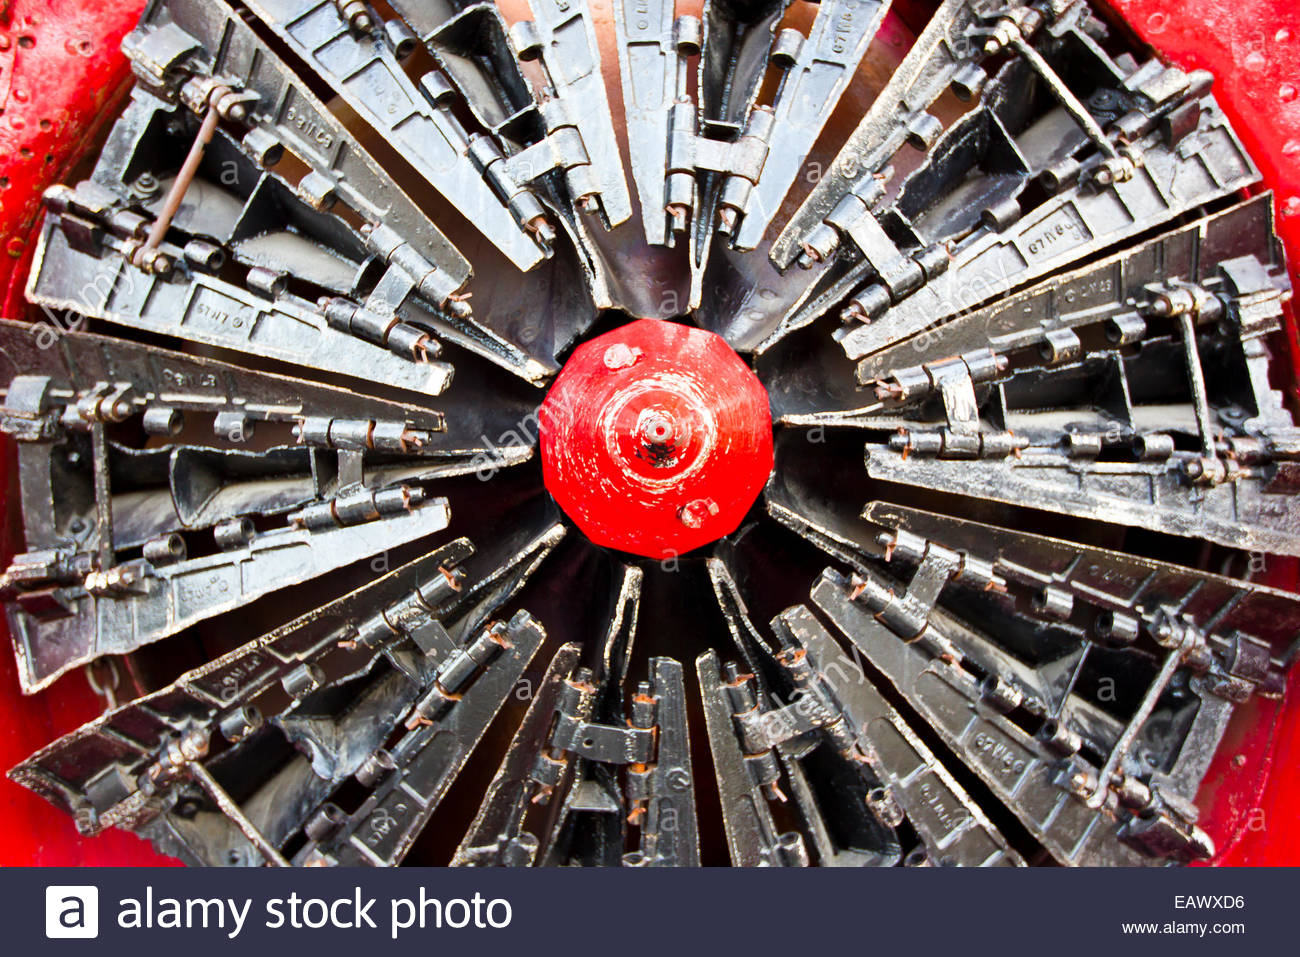 Front end blades attached to a train used for mining. - Stock Image